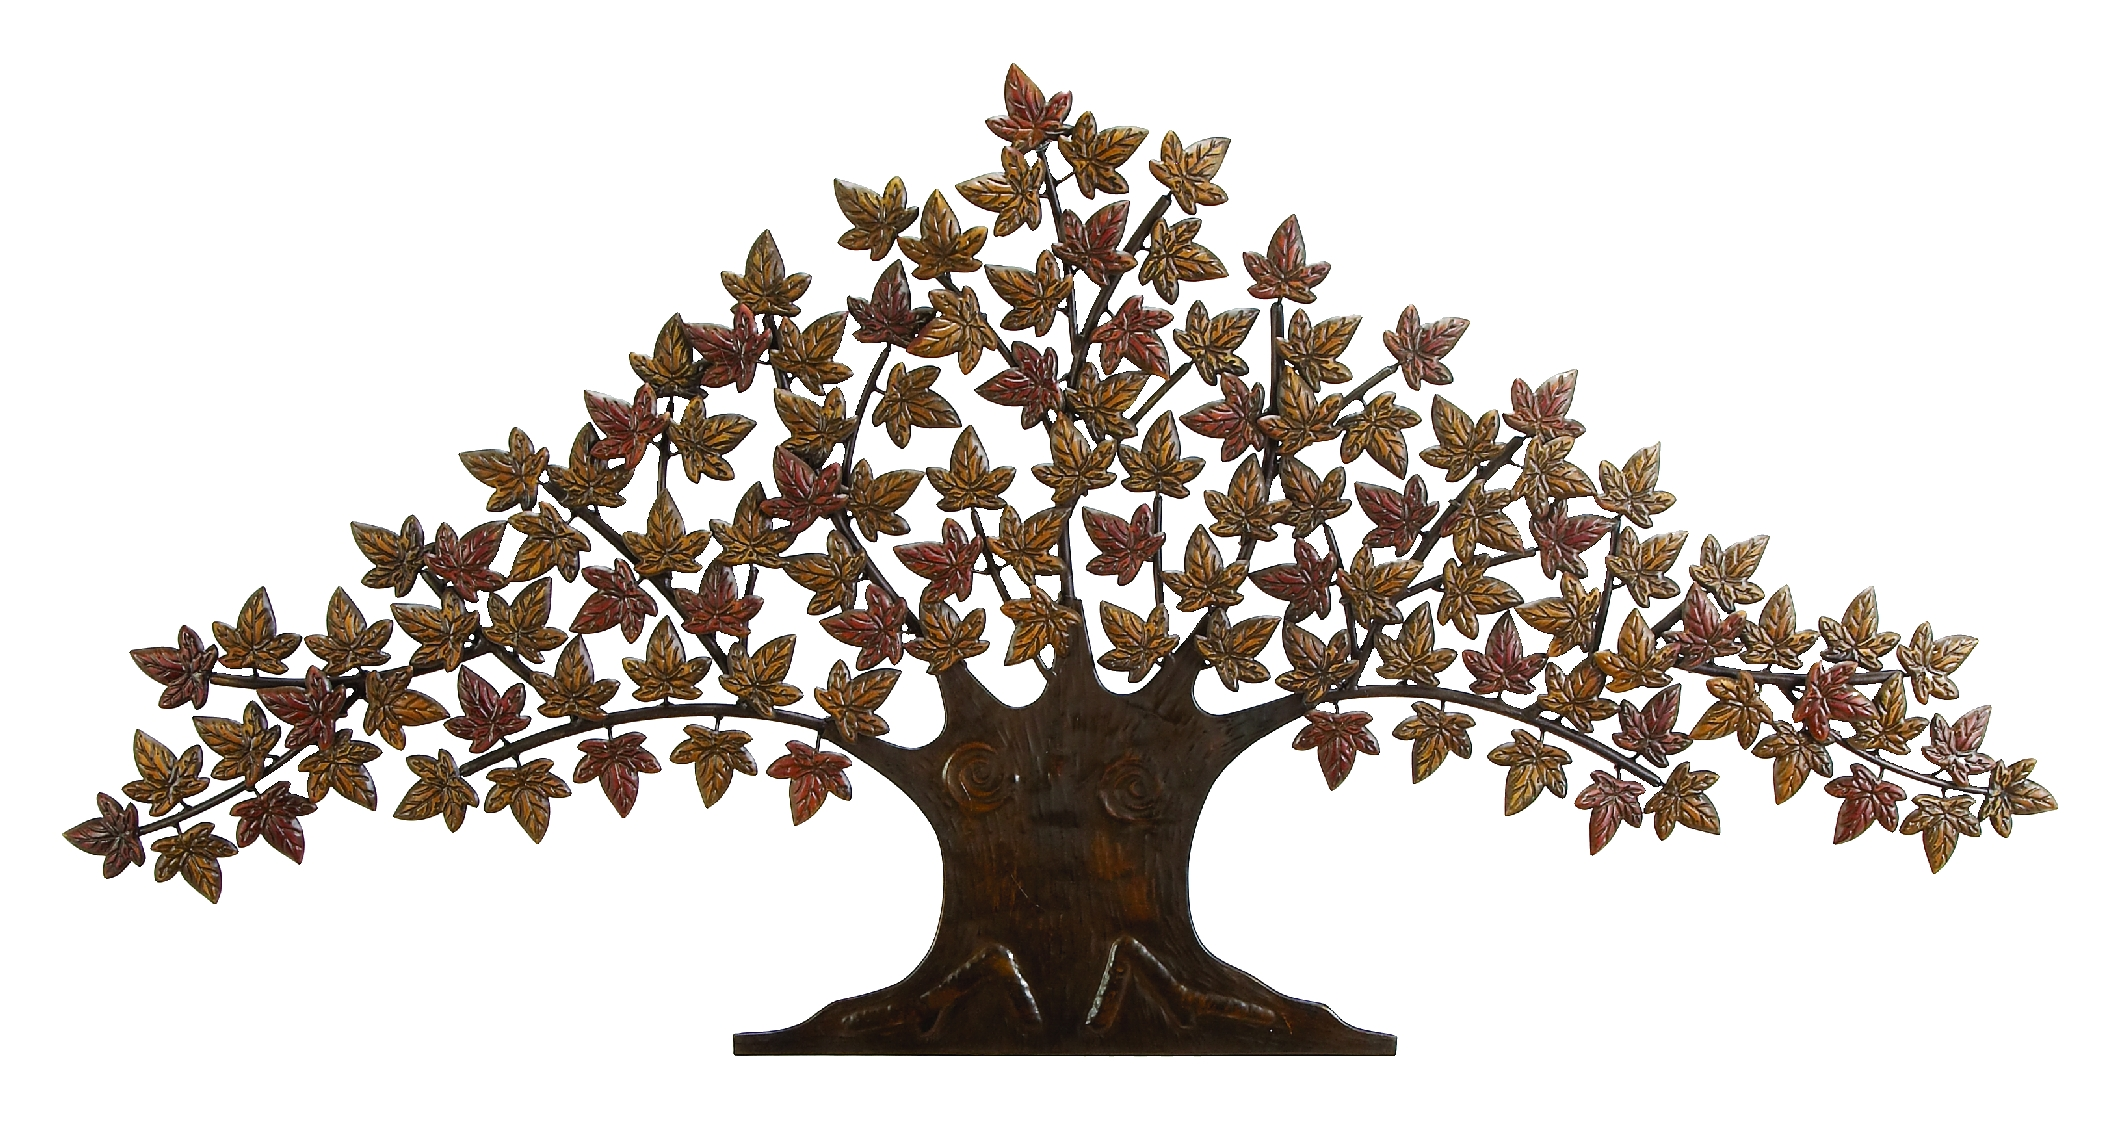 New lone tree metal wall art decor sculpture 24 x48 ebay for Bronze wall art